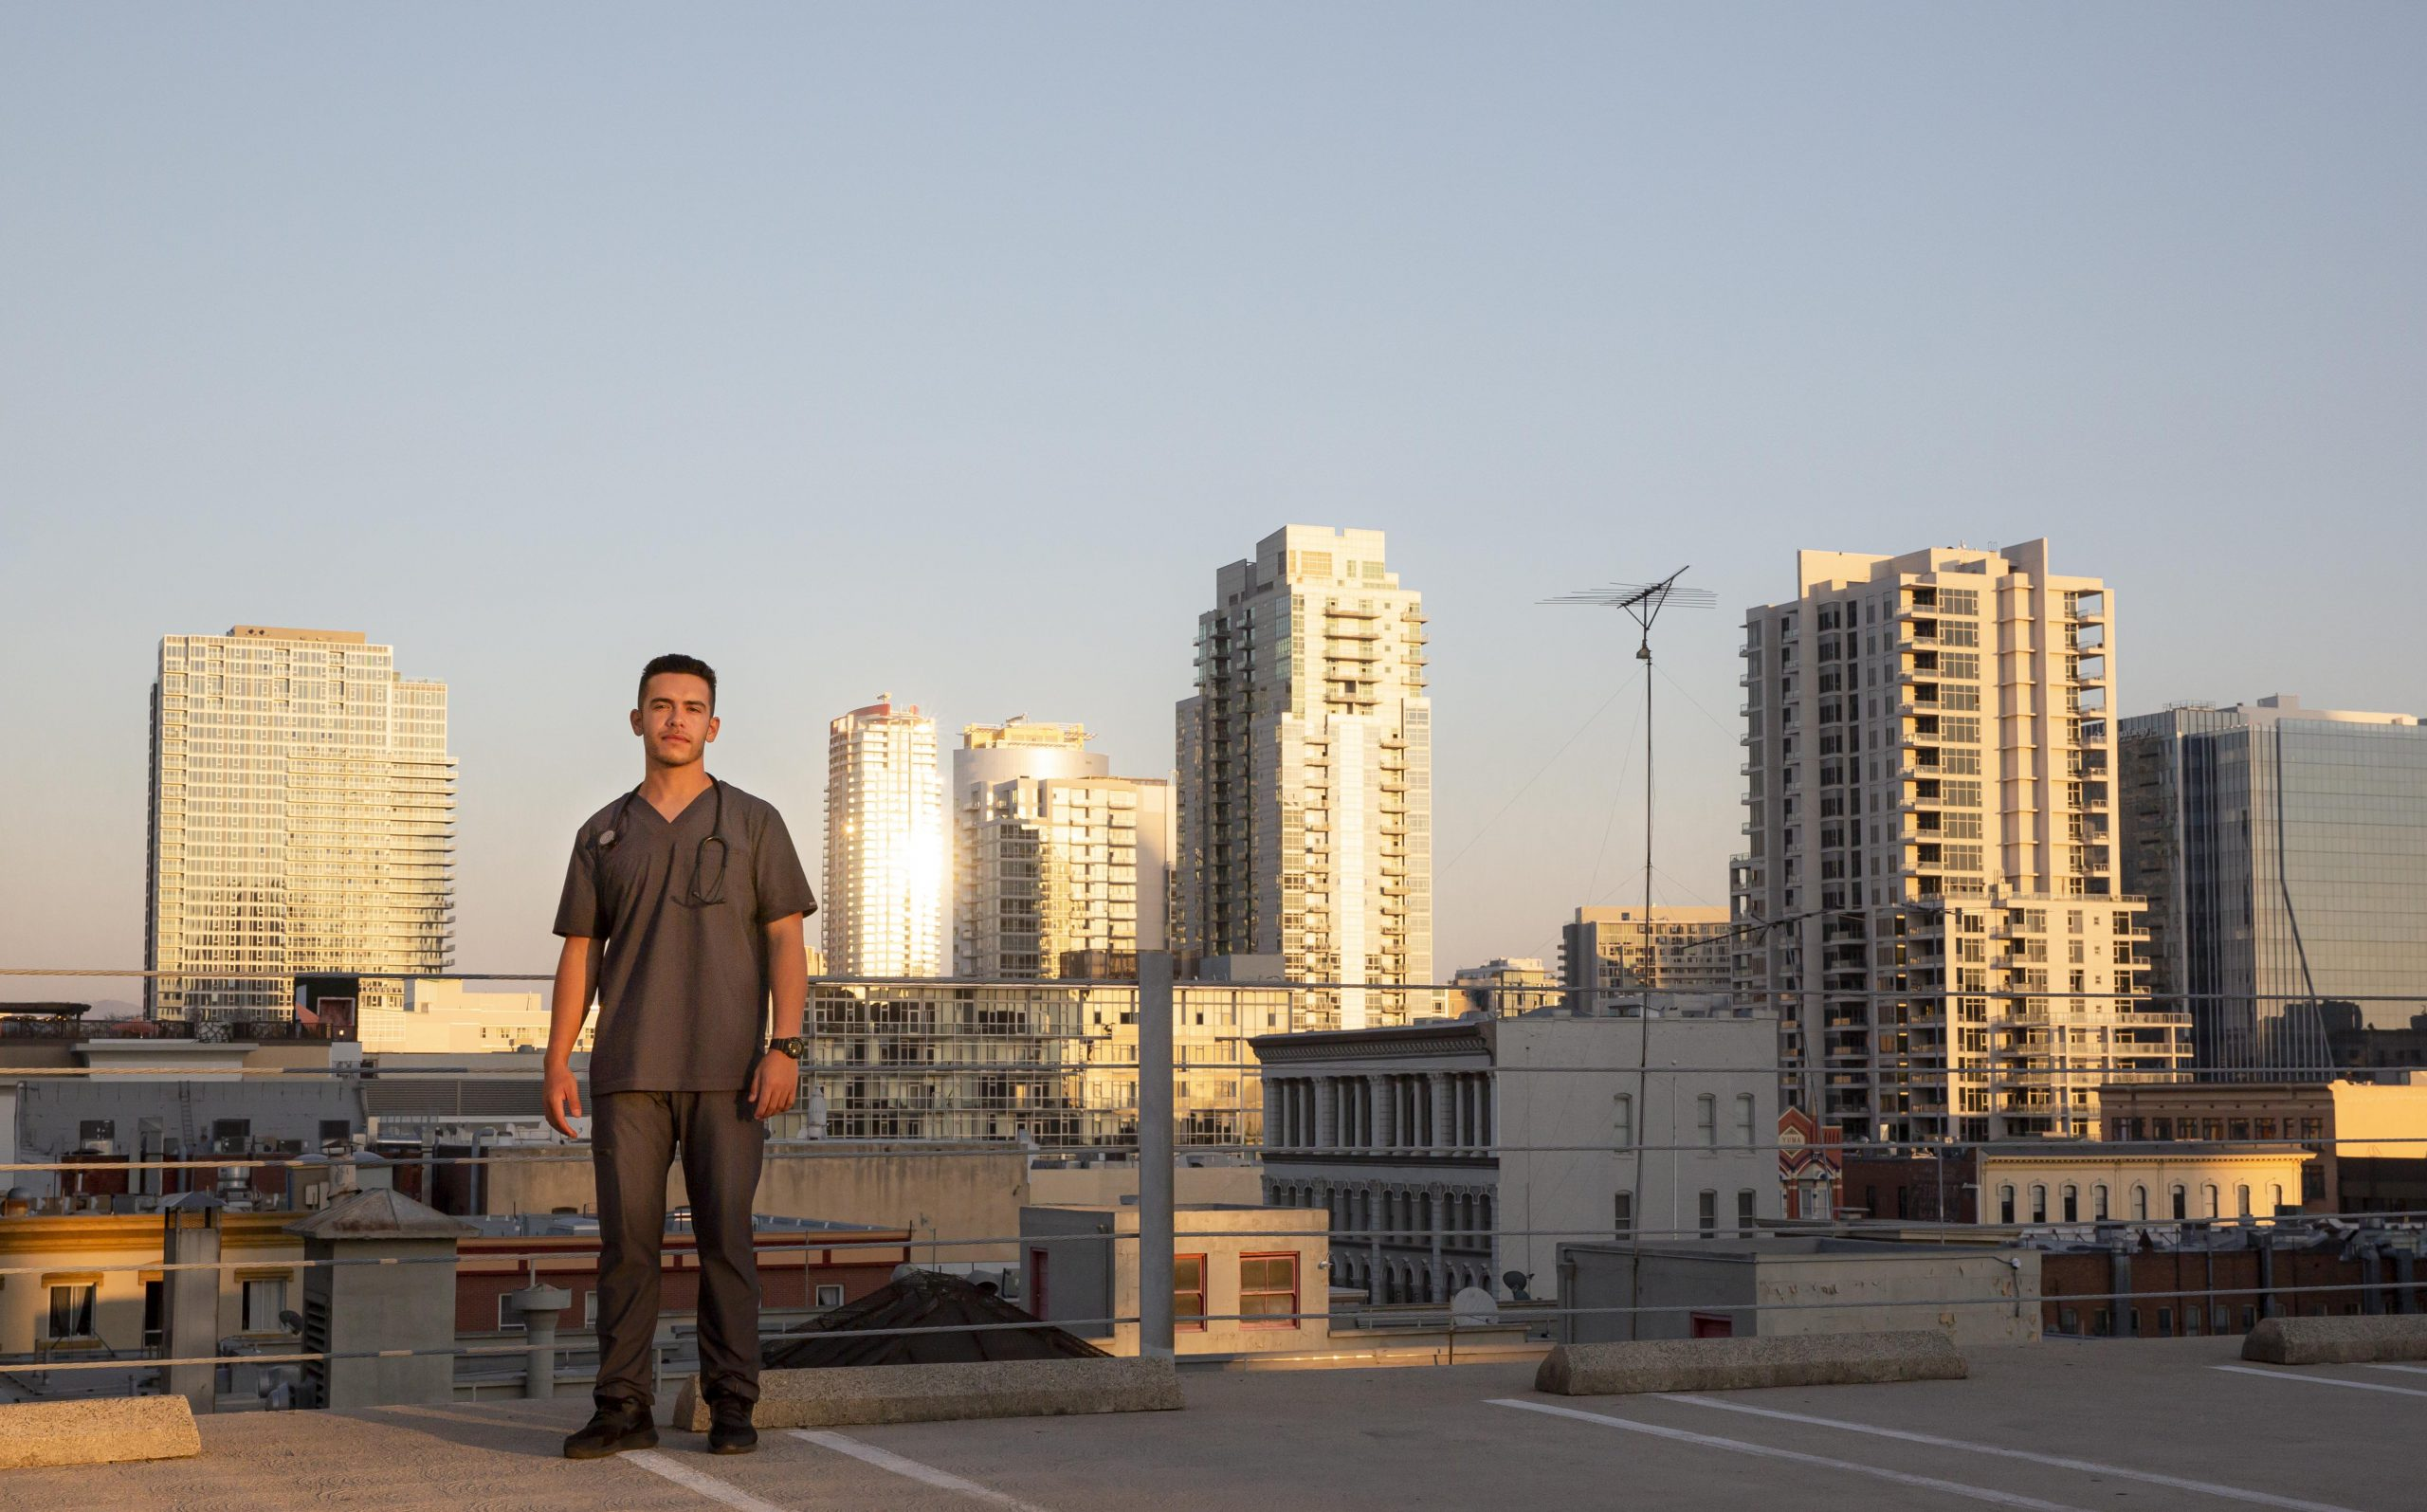 Elias in scrubs with the city in the background